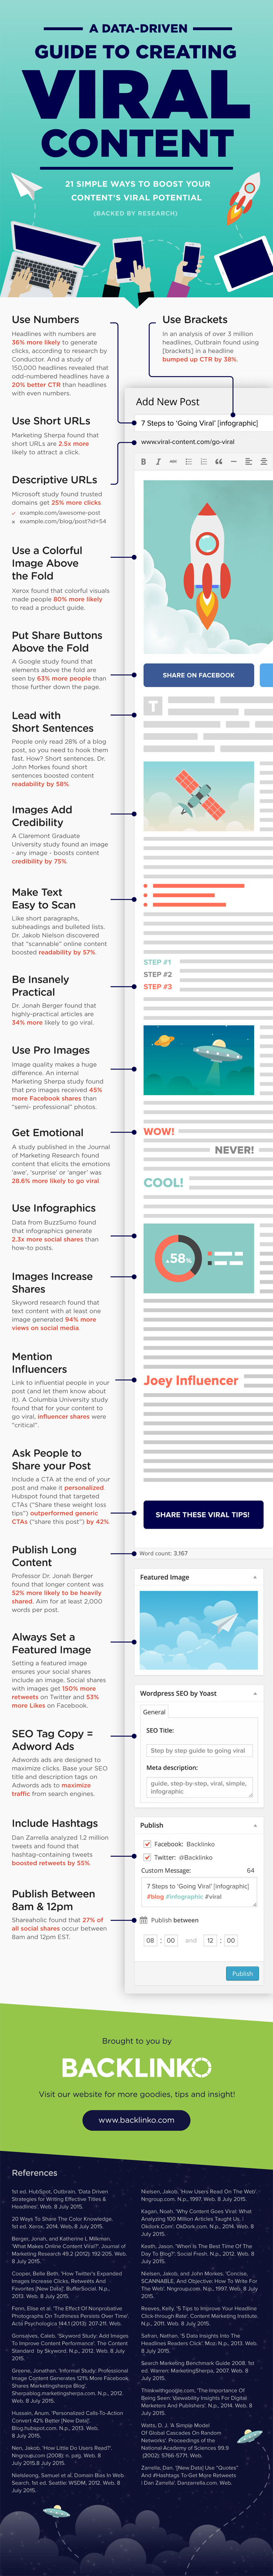 21 Simple Ways to Create the Best Viral Content